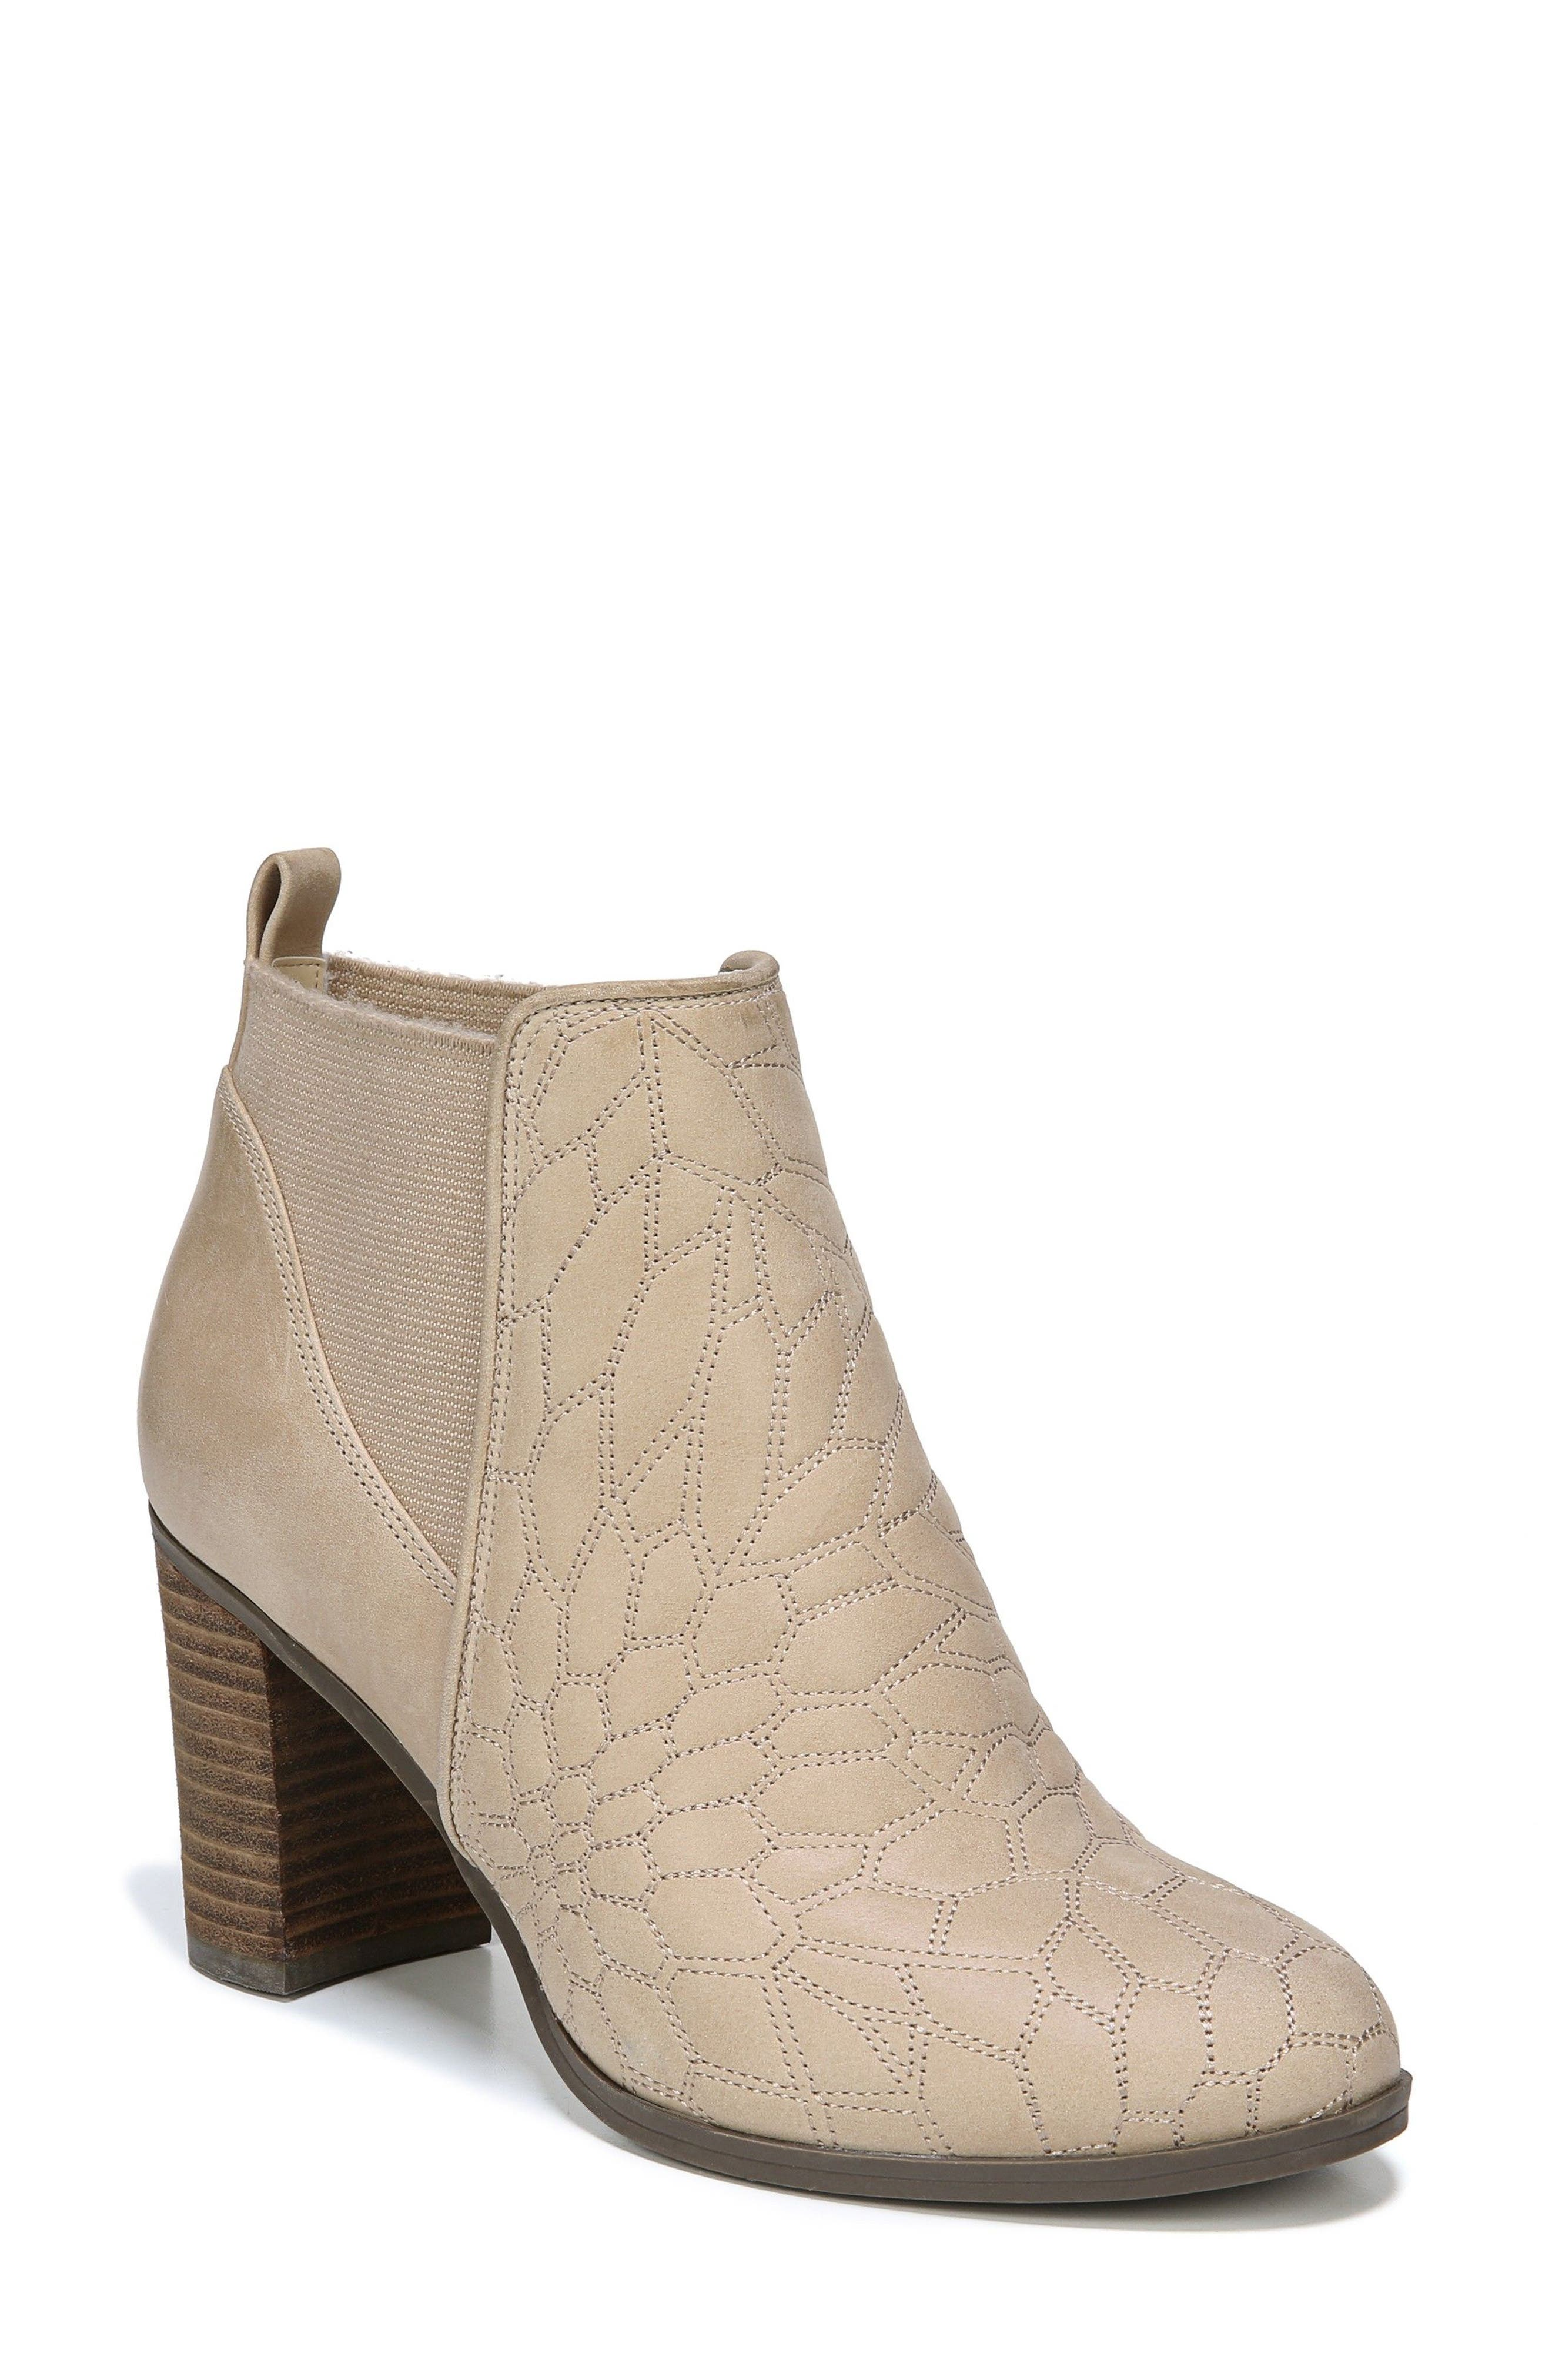 Alternate Image 1 Selected - Dr. Scholl's Dixie Bootie (Women)